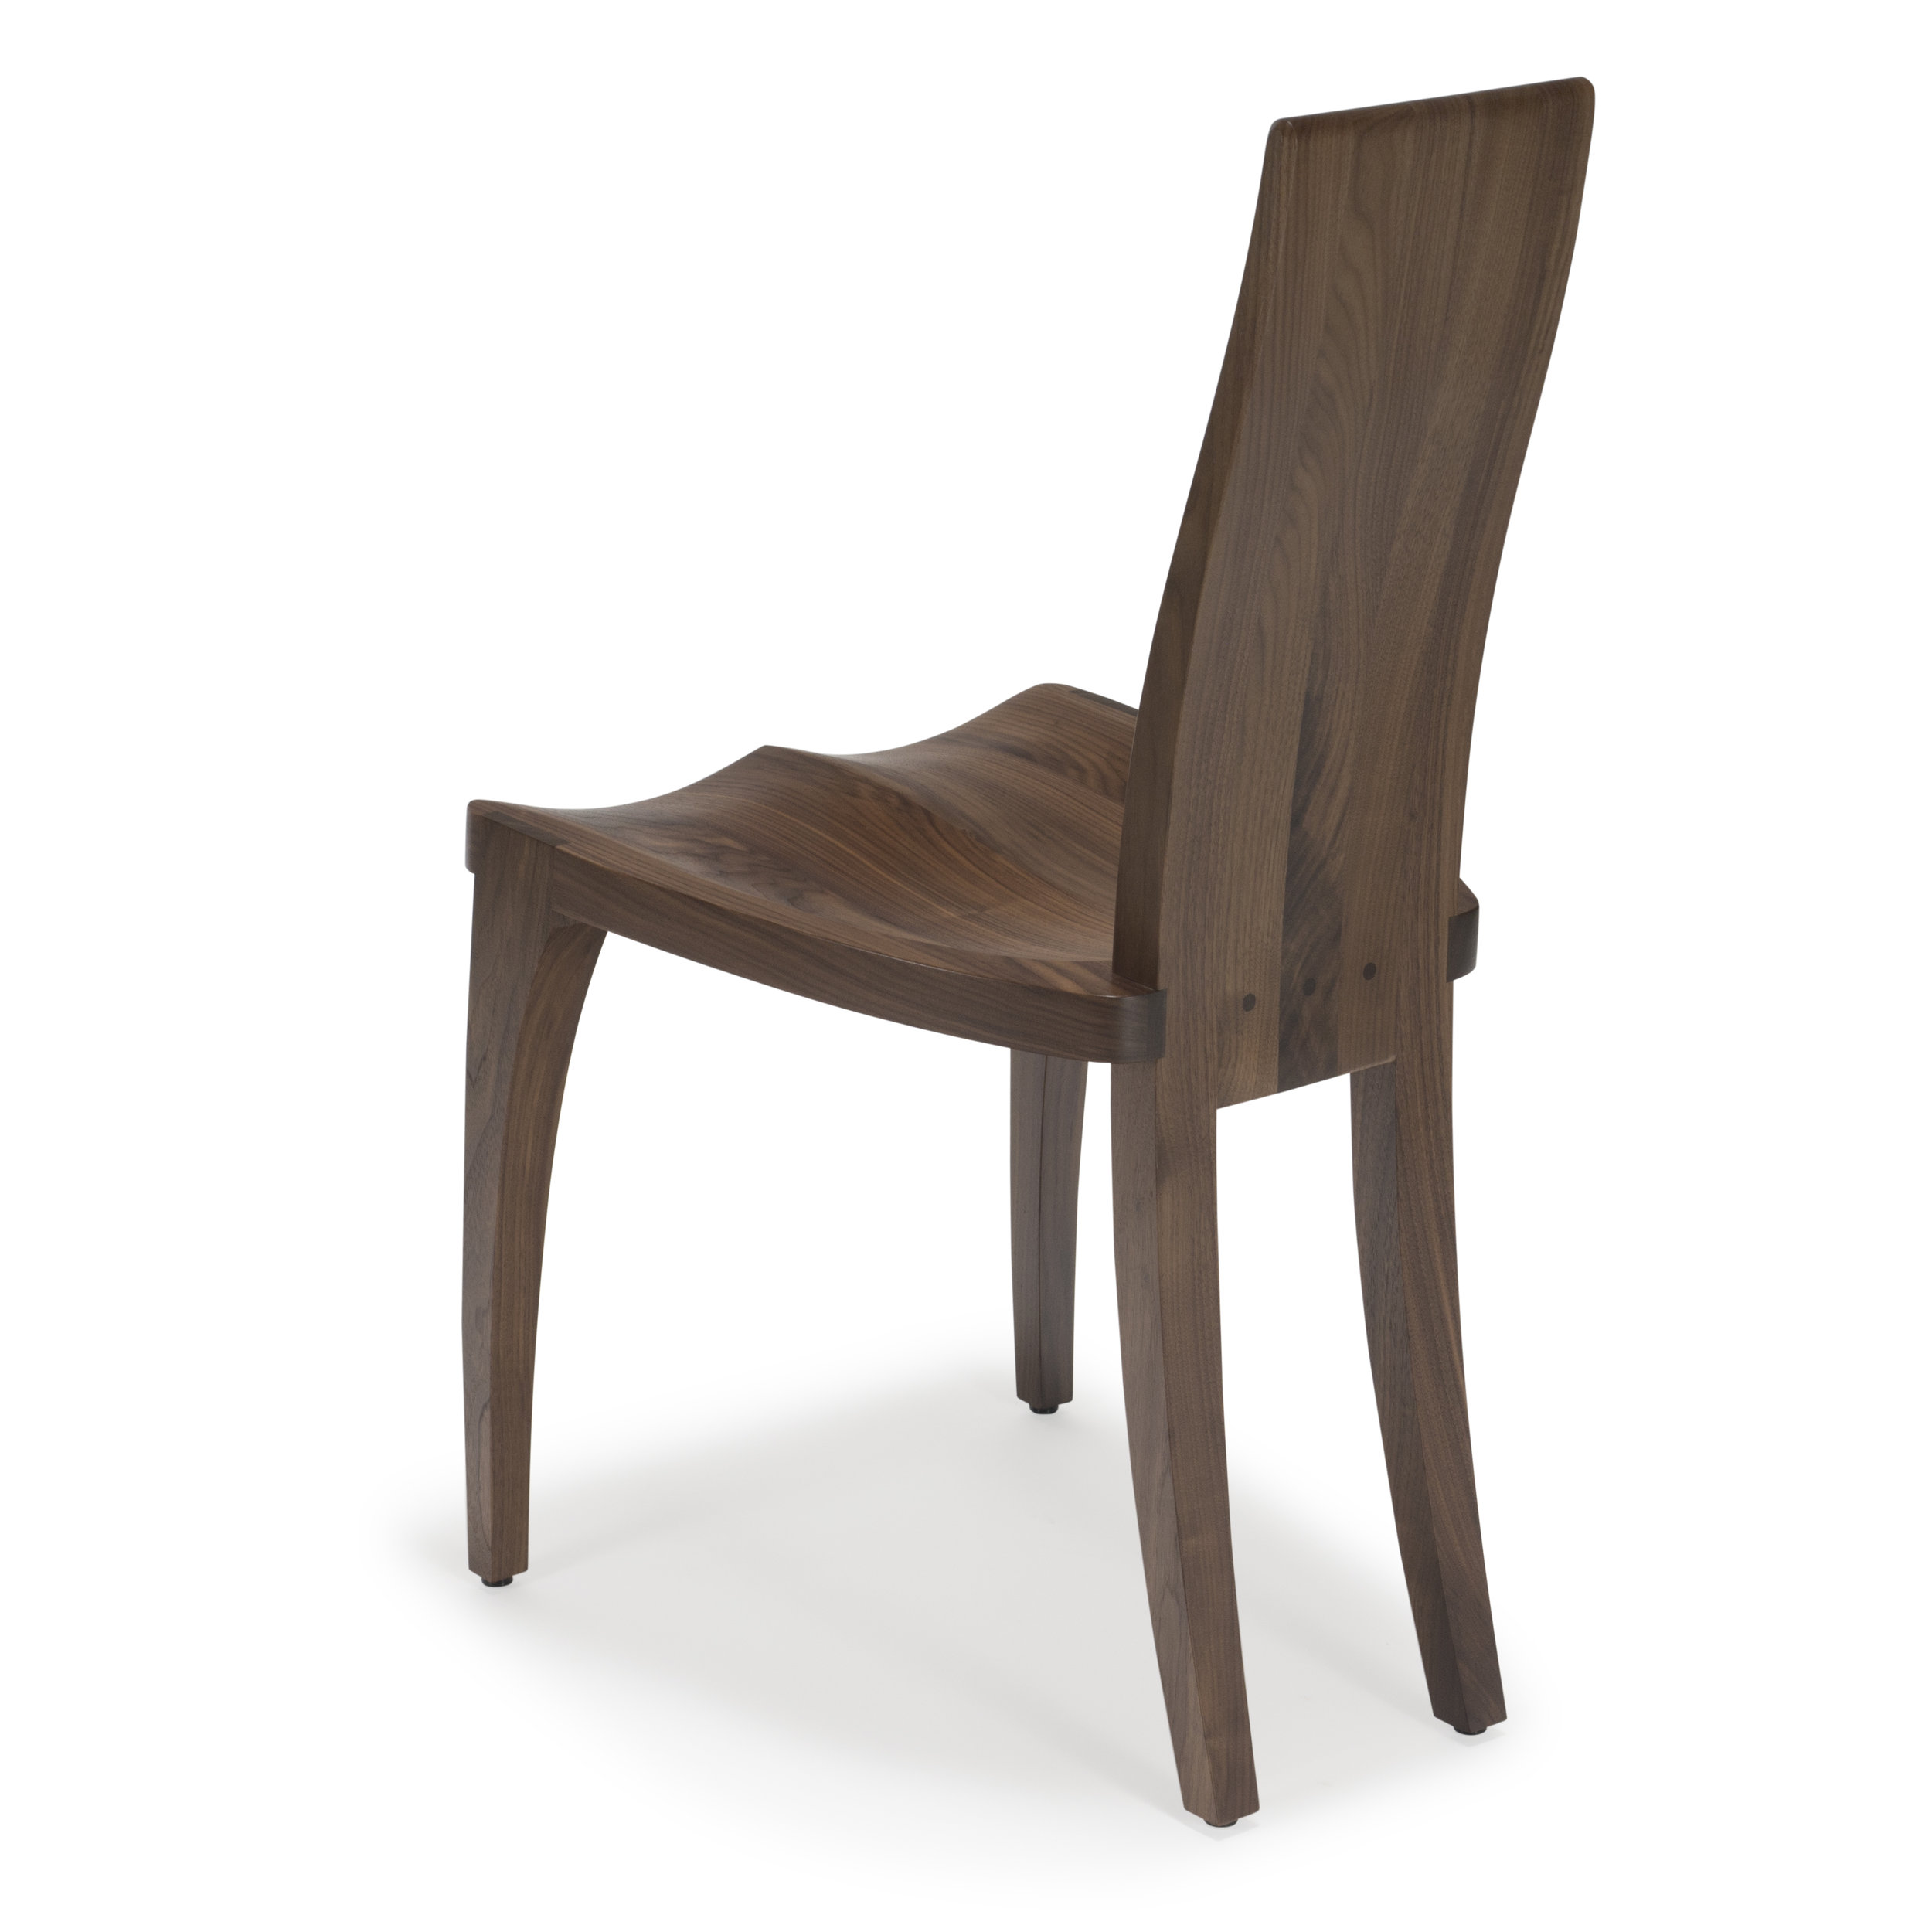 Walnut Dining Chair Dining Chair Handmade Scandinavian Dining Chair High Back In Solid Walnut Wood